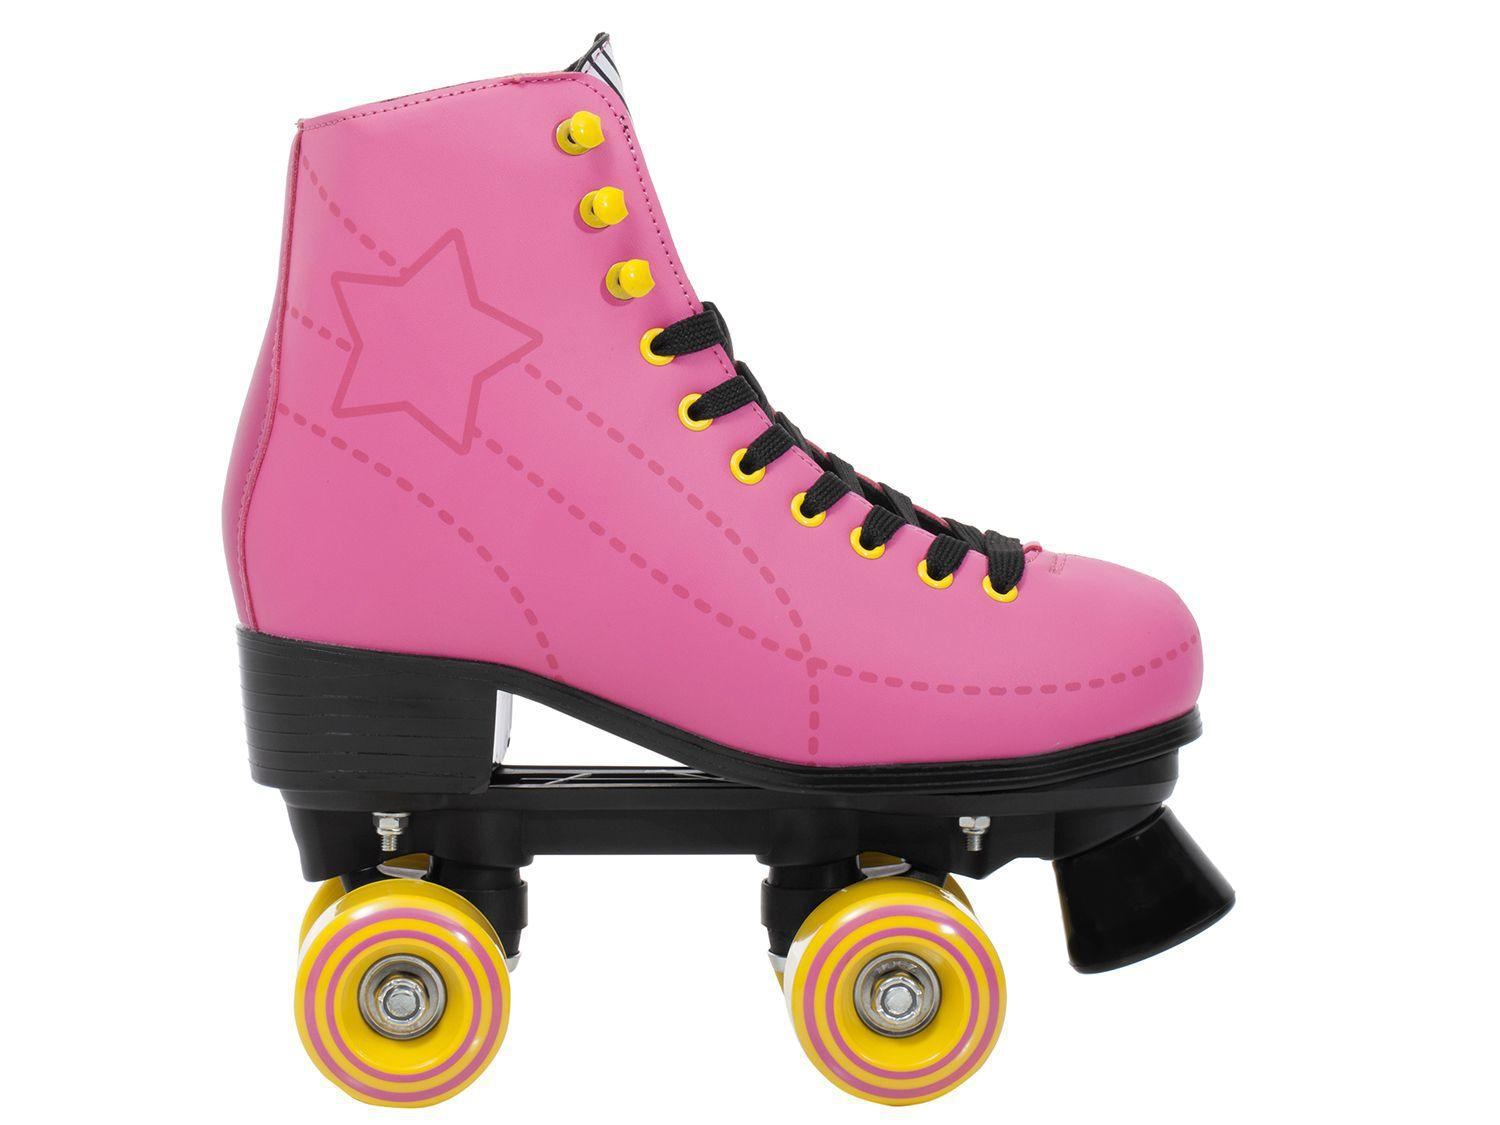 Patins My Style Fashion Wheels N 37 Multikids Patins